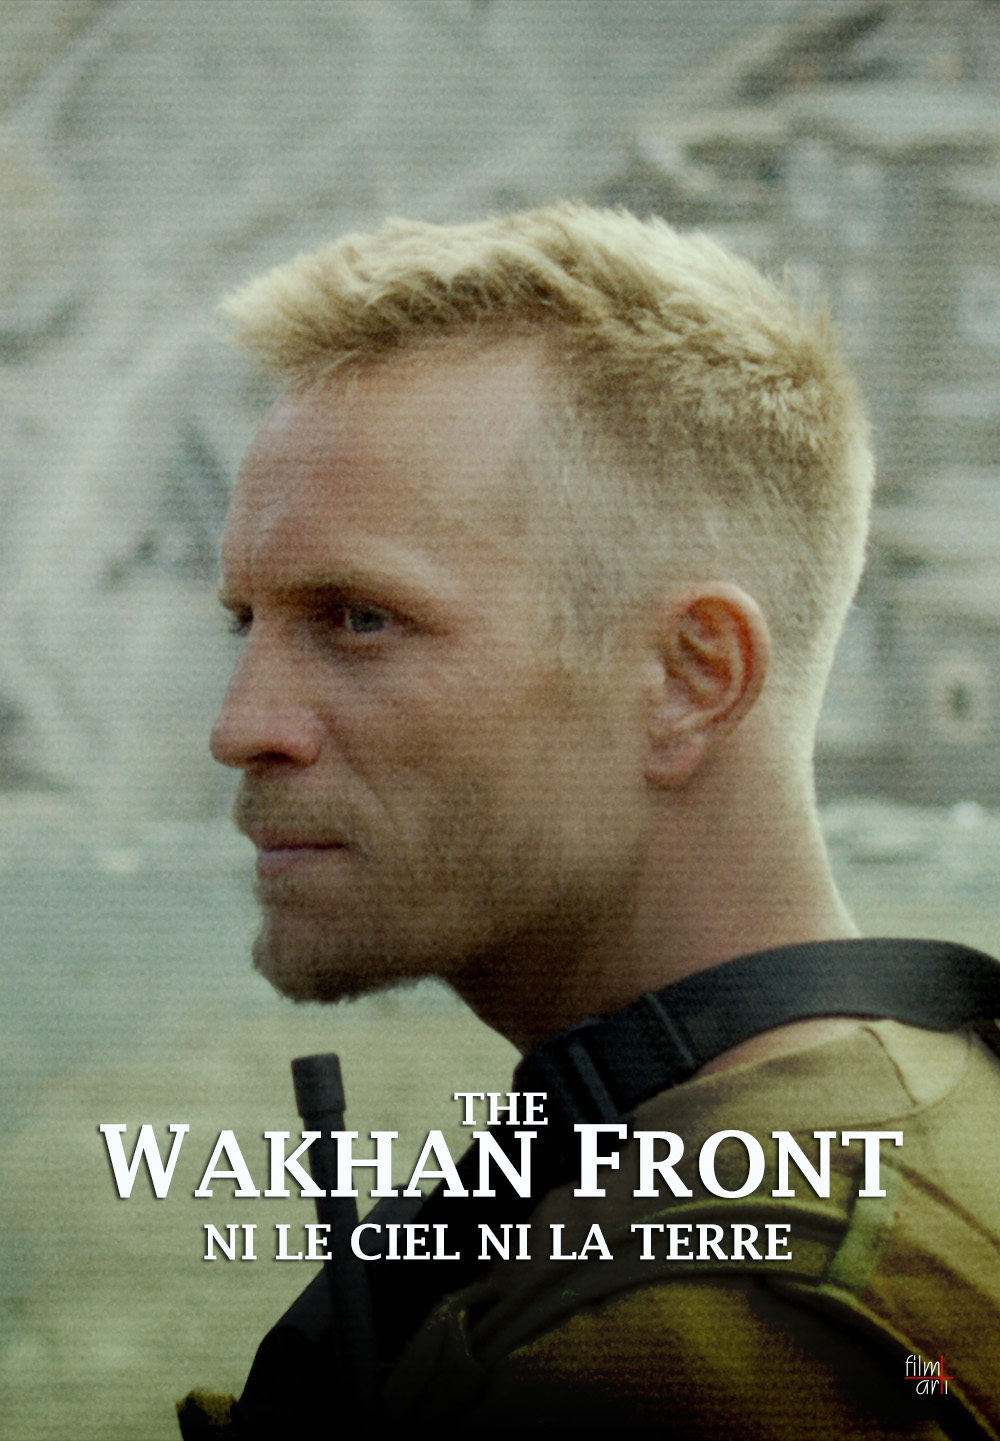 The Wakhan Front (2015)